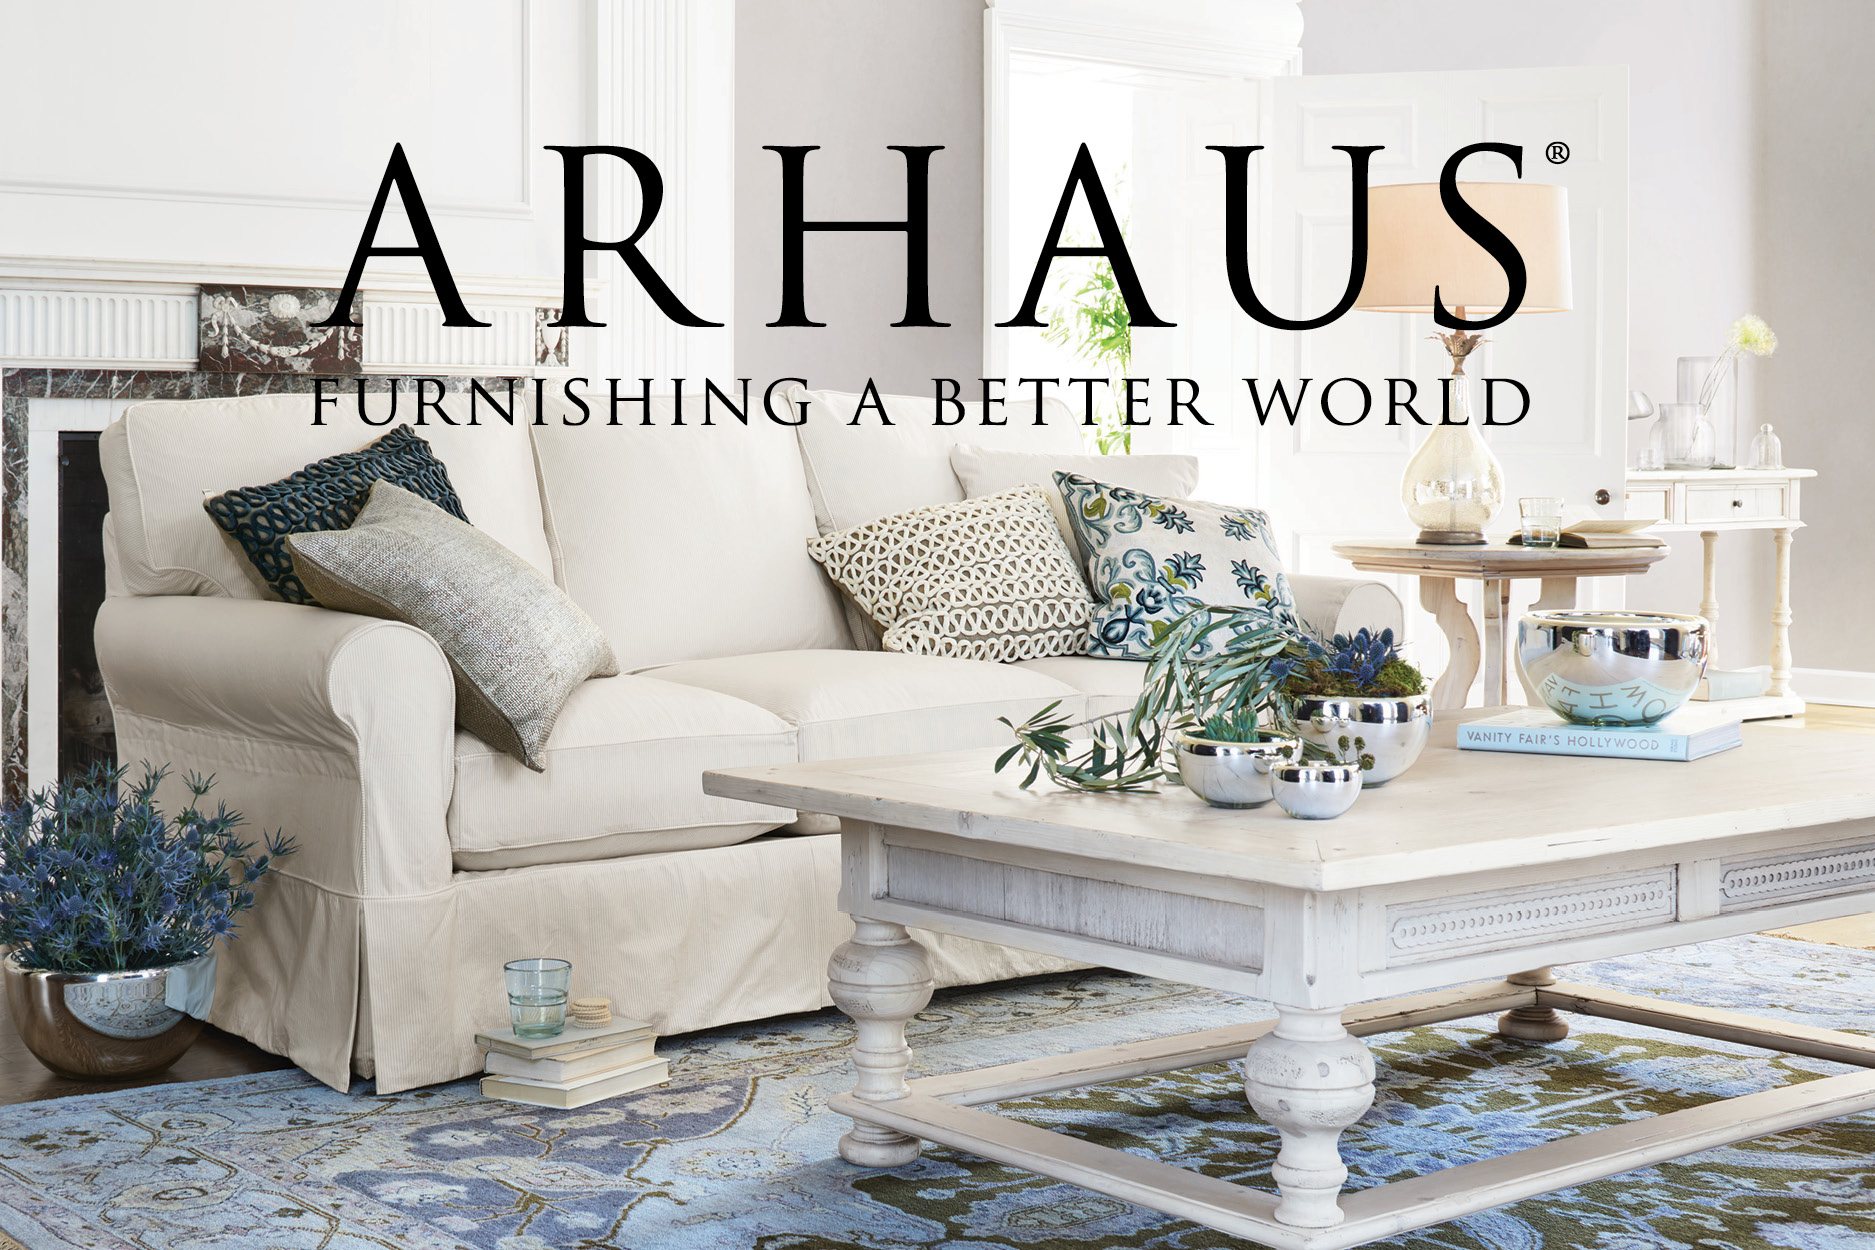 Win Up To 20k For An Arhaus Room Makeover Design Services